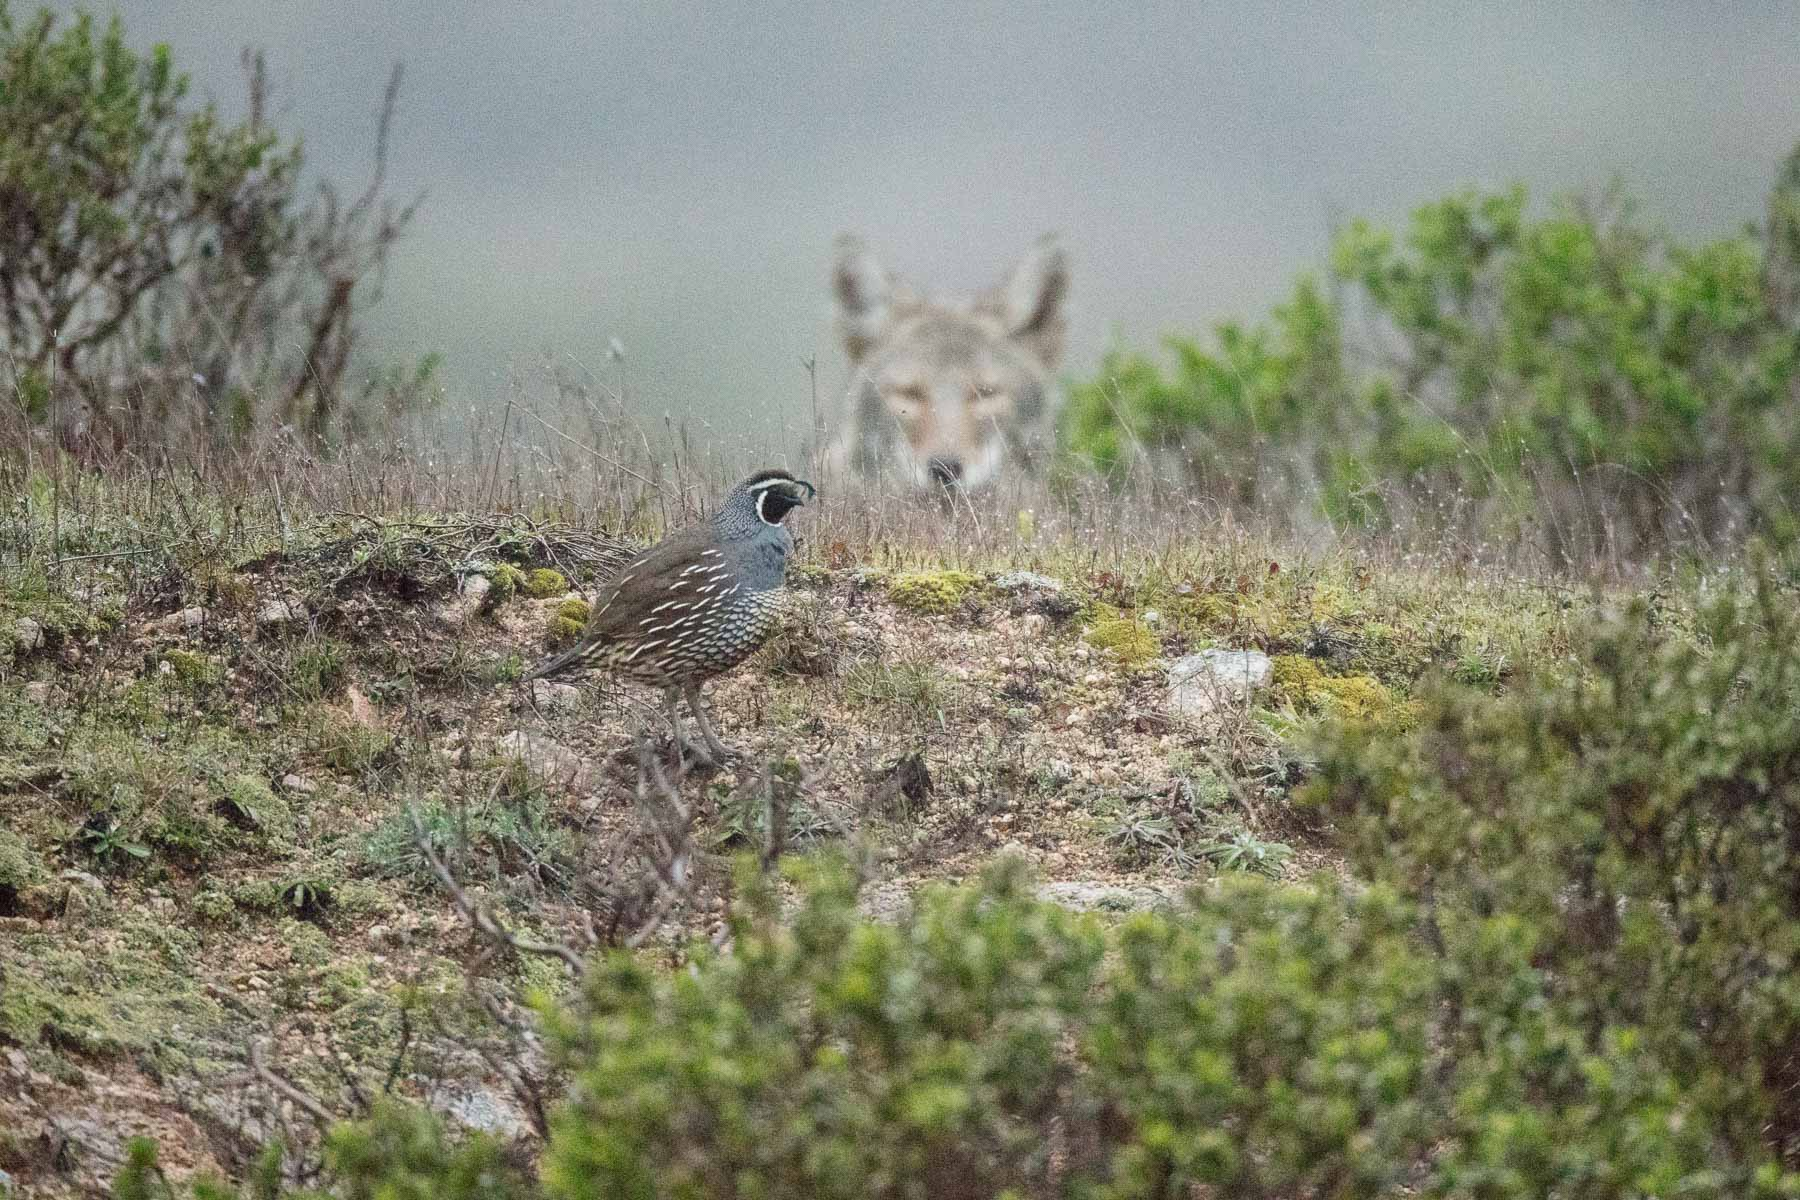 Male California Quail being sized-up by a Coyote on the prowl.